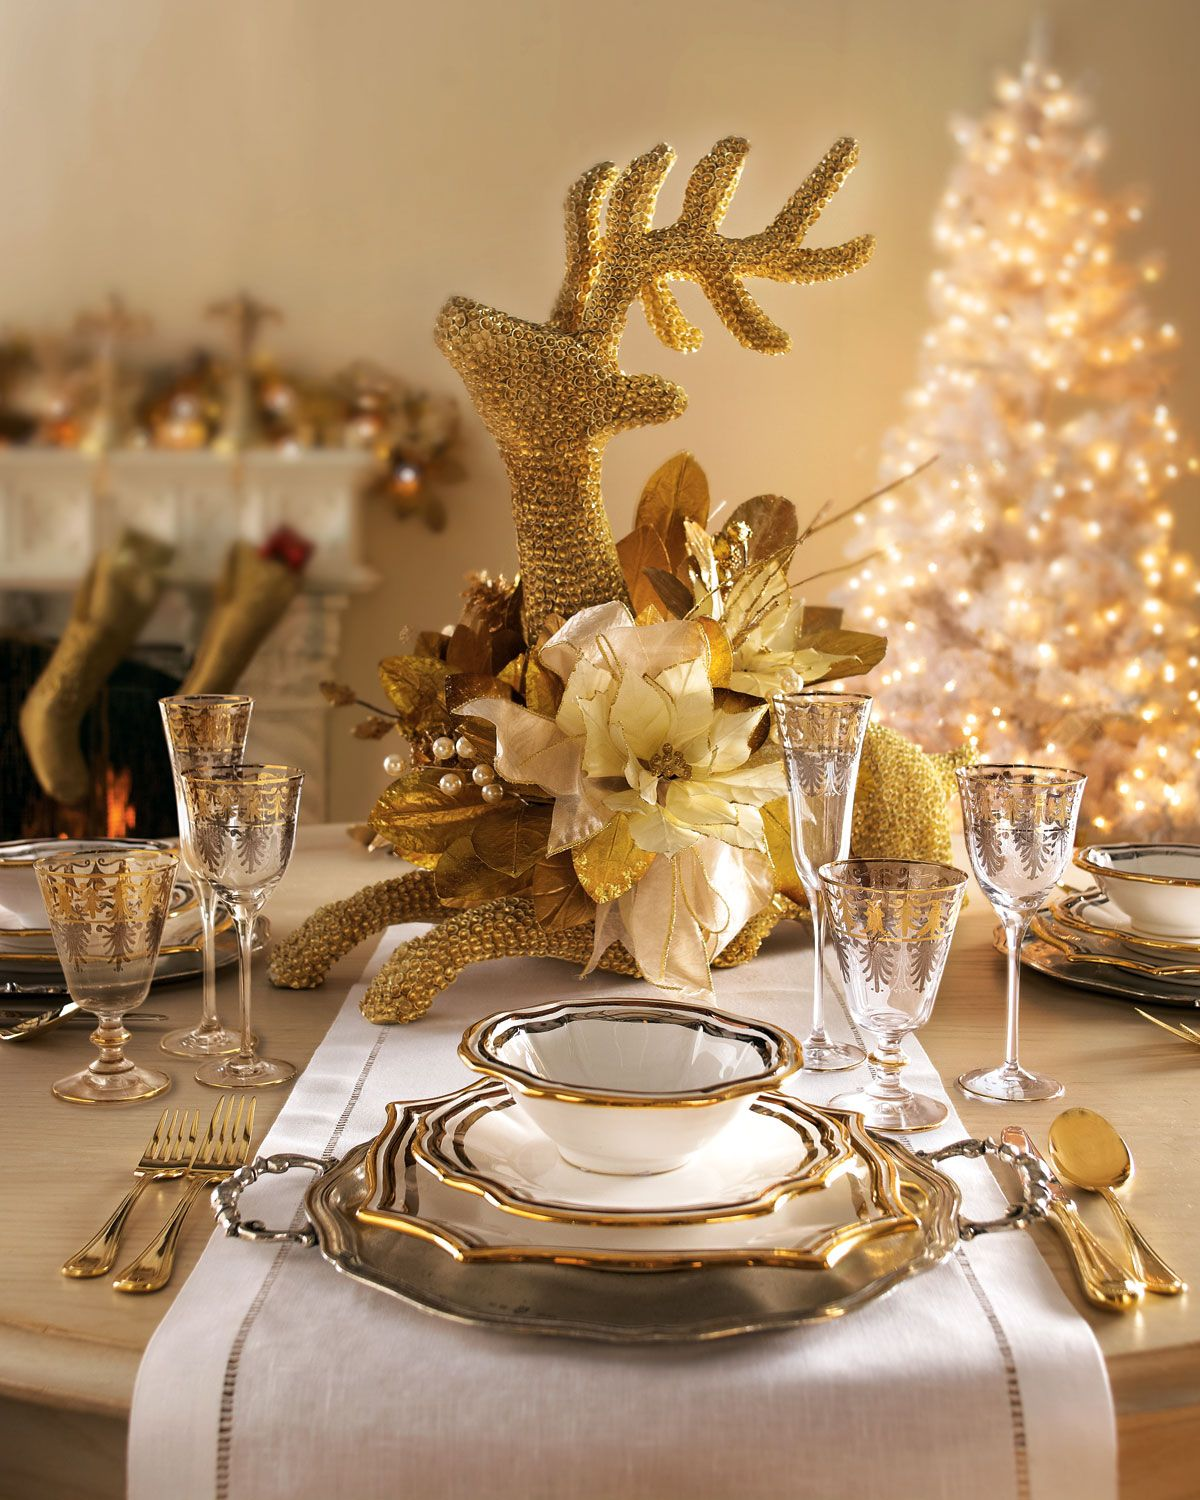 Elegant christmas table decorations - Dinner Table Decorations